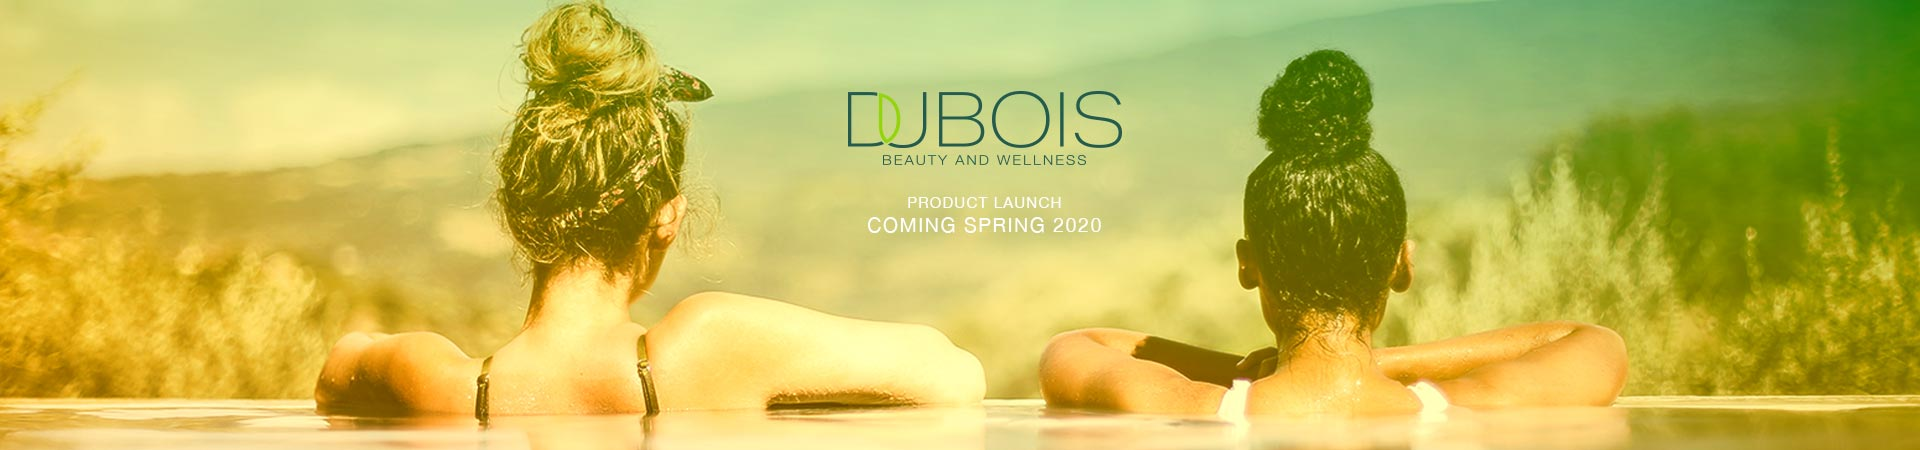 Dubois Beauty Skincare Launch Spring 2020 - Two girls in pool